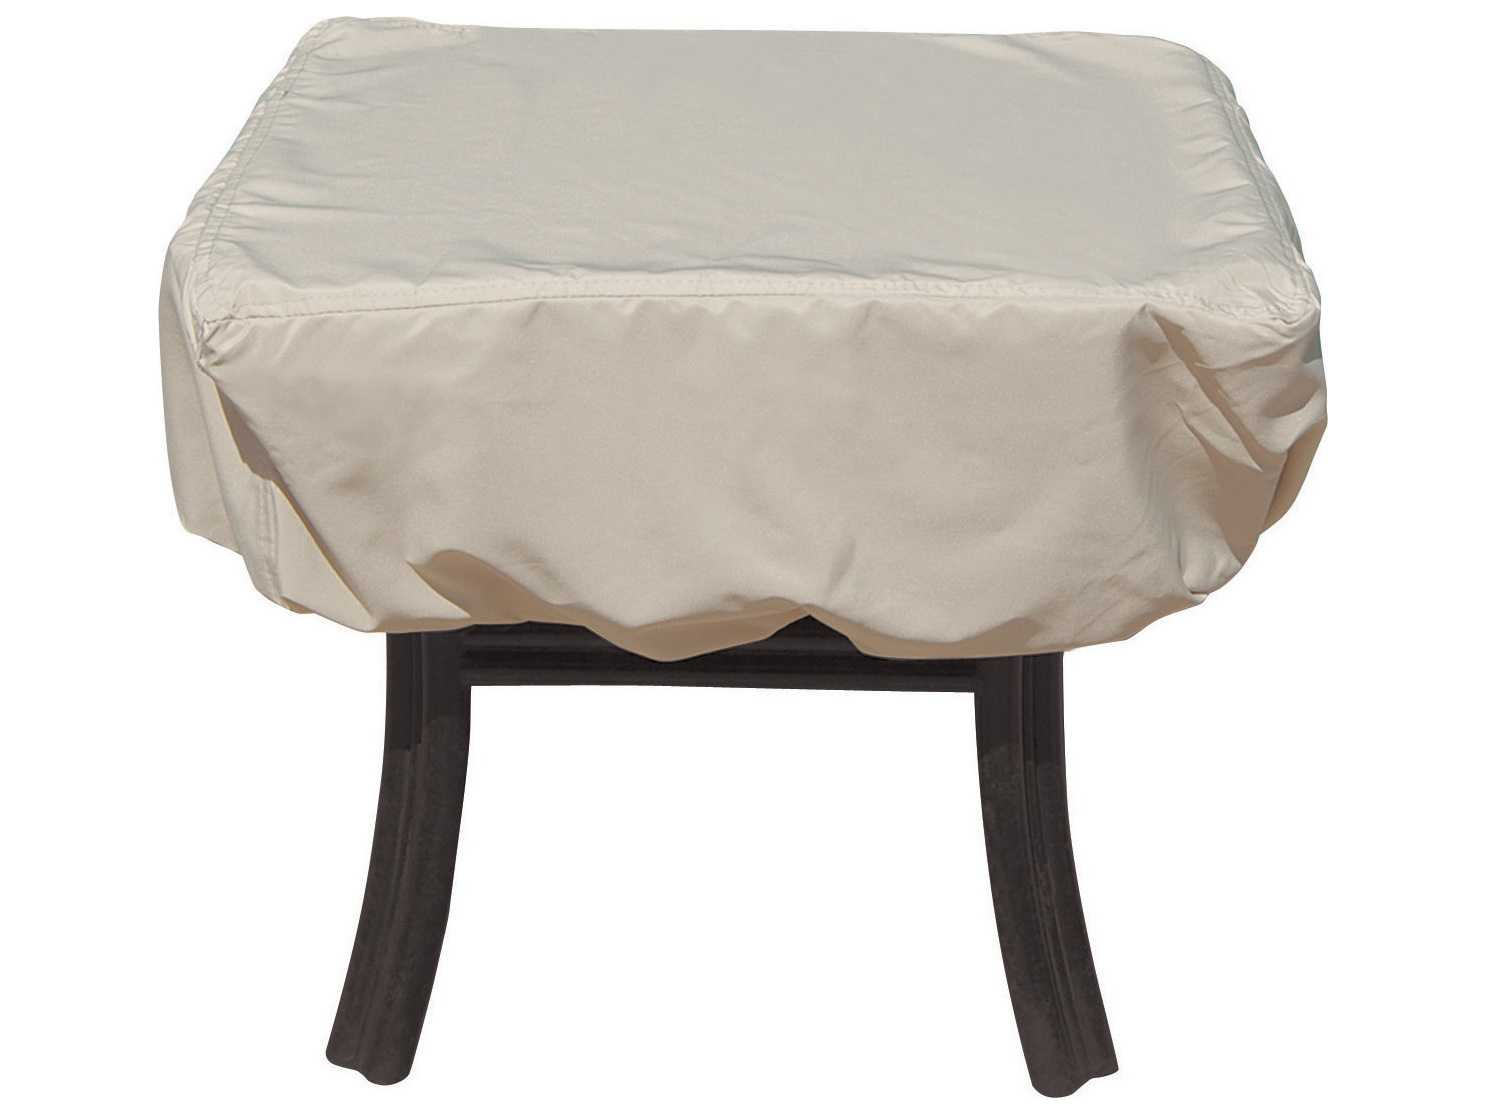 garden treasures patio chairs d box chair treasure 28 square and 24 round tables cover excp922